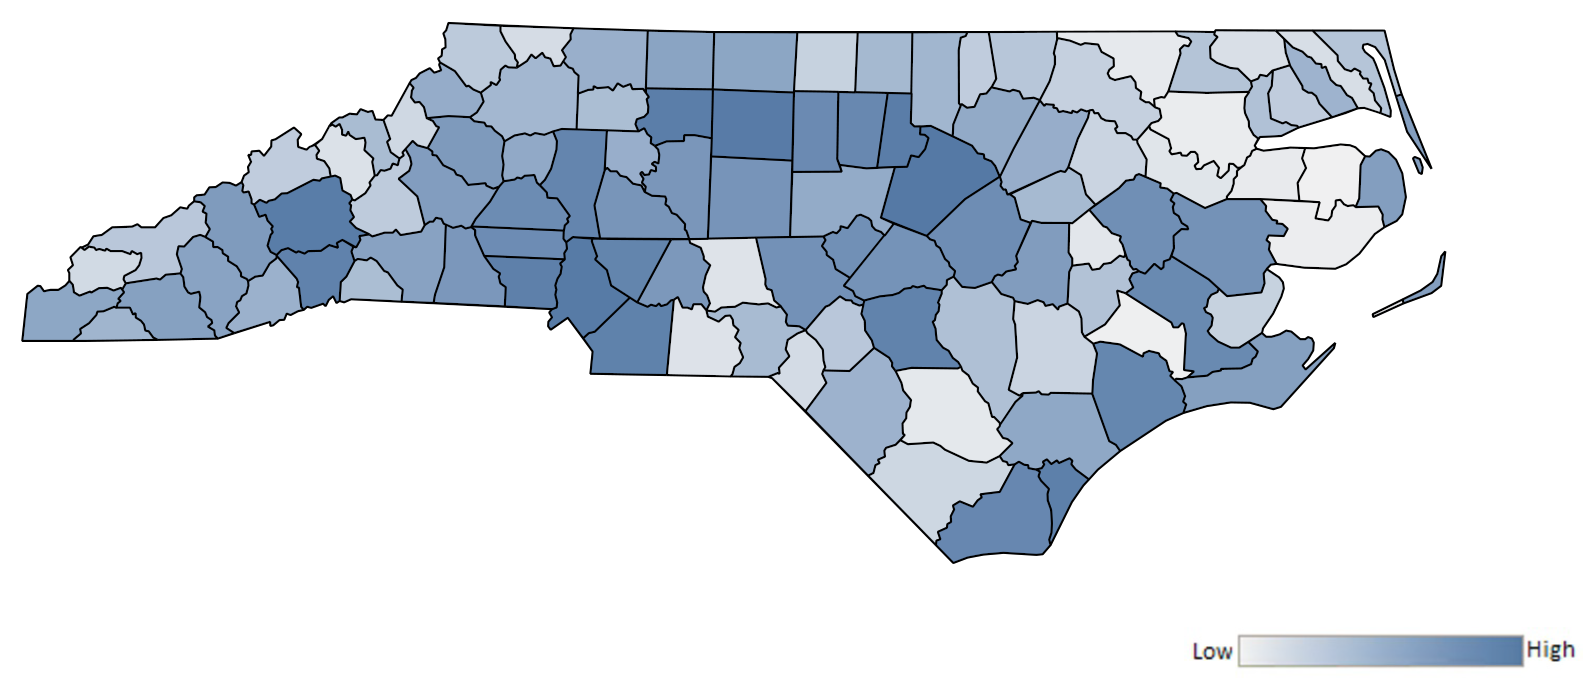 Map of North Carolina counties indicating relative number of complaints from low to high. See attached CSV file for complaint data by jurisdiction.